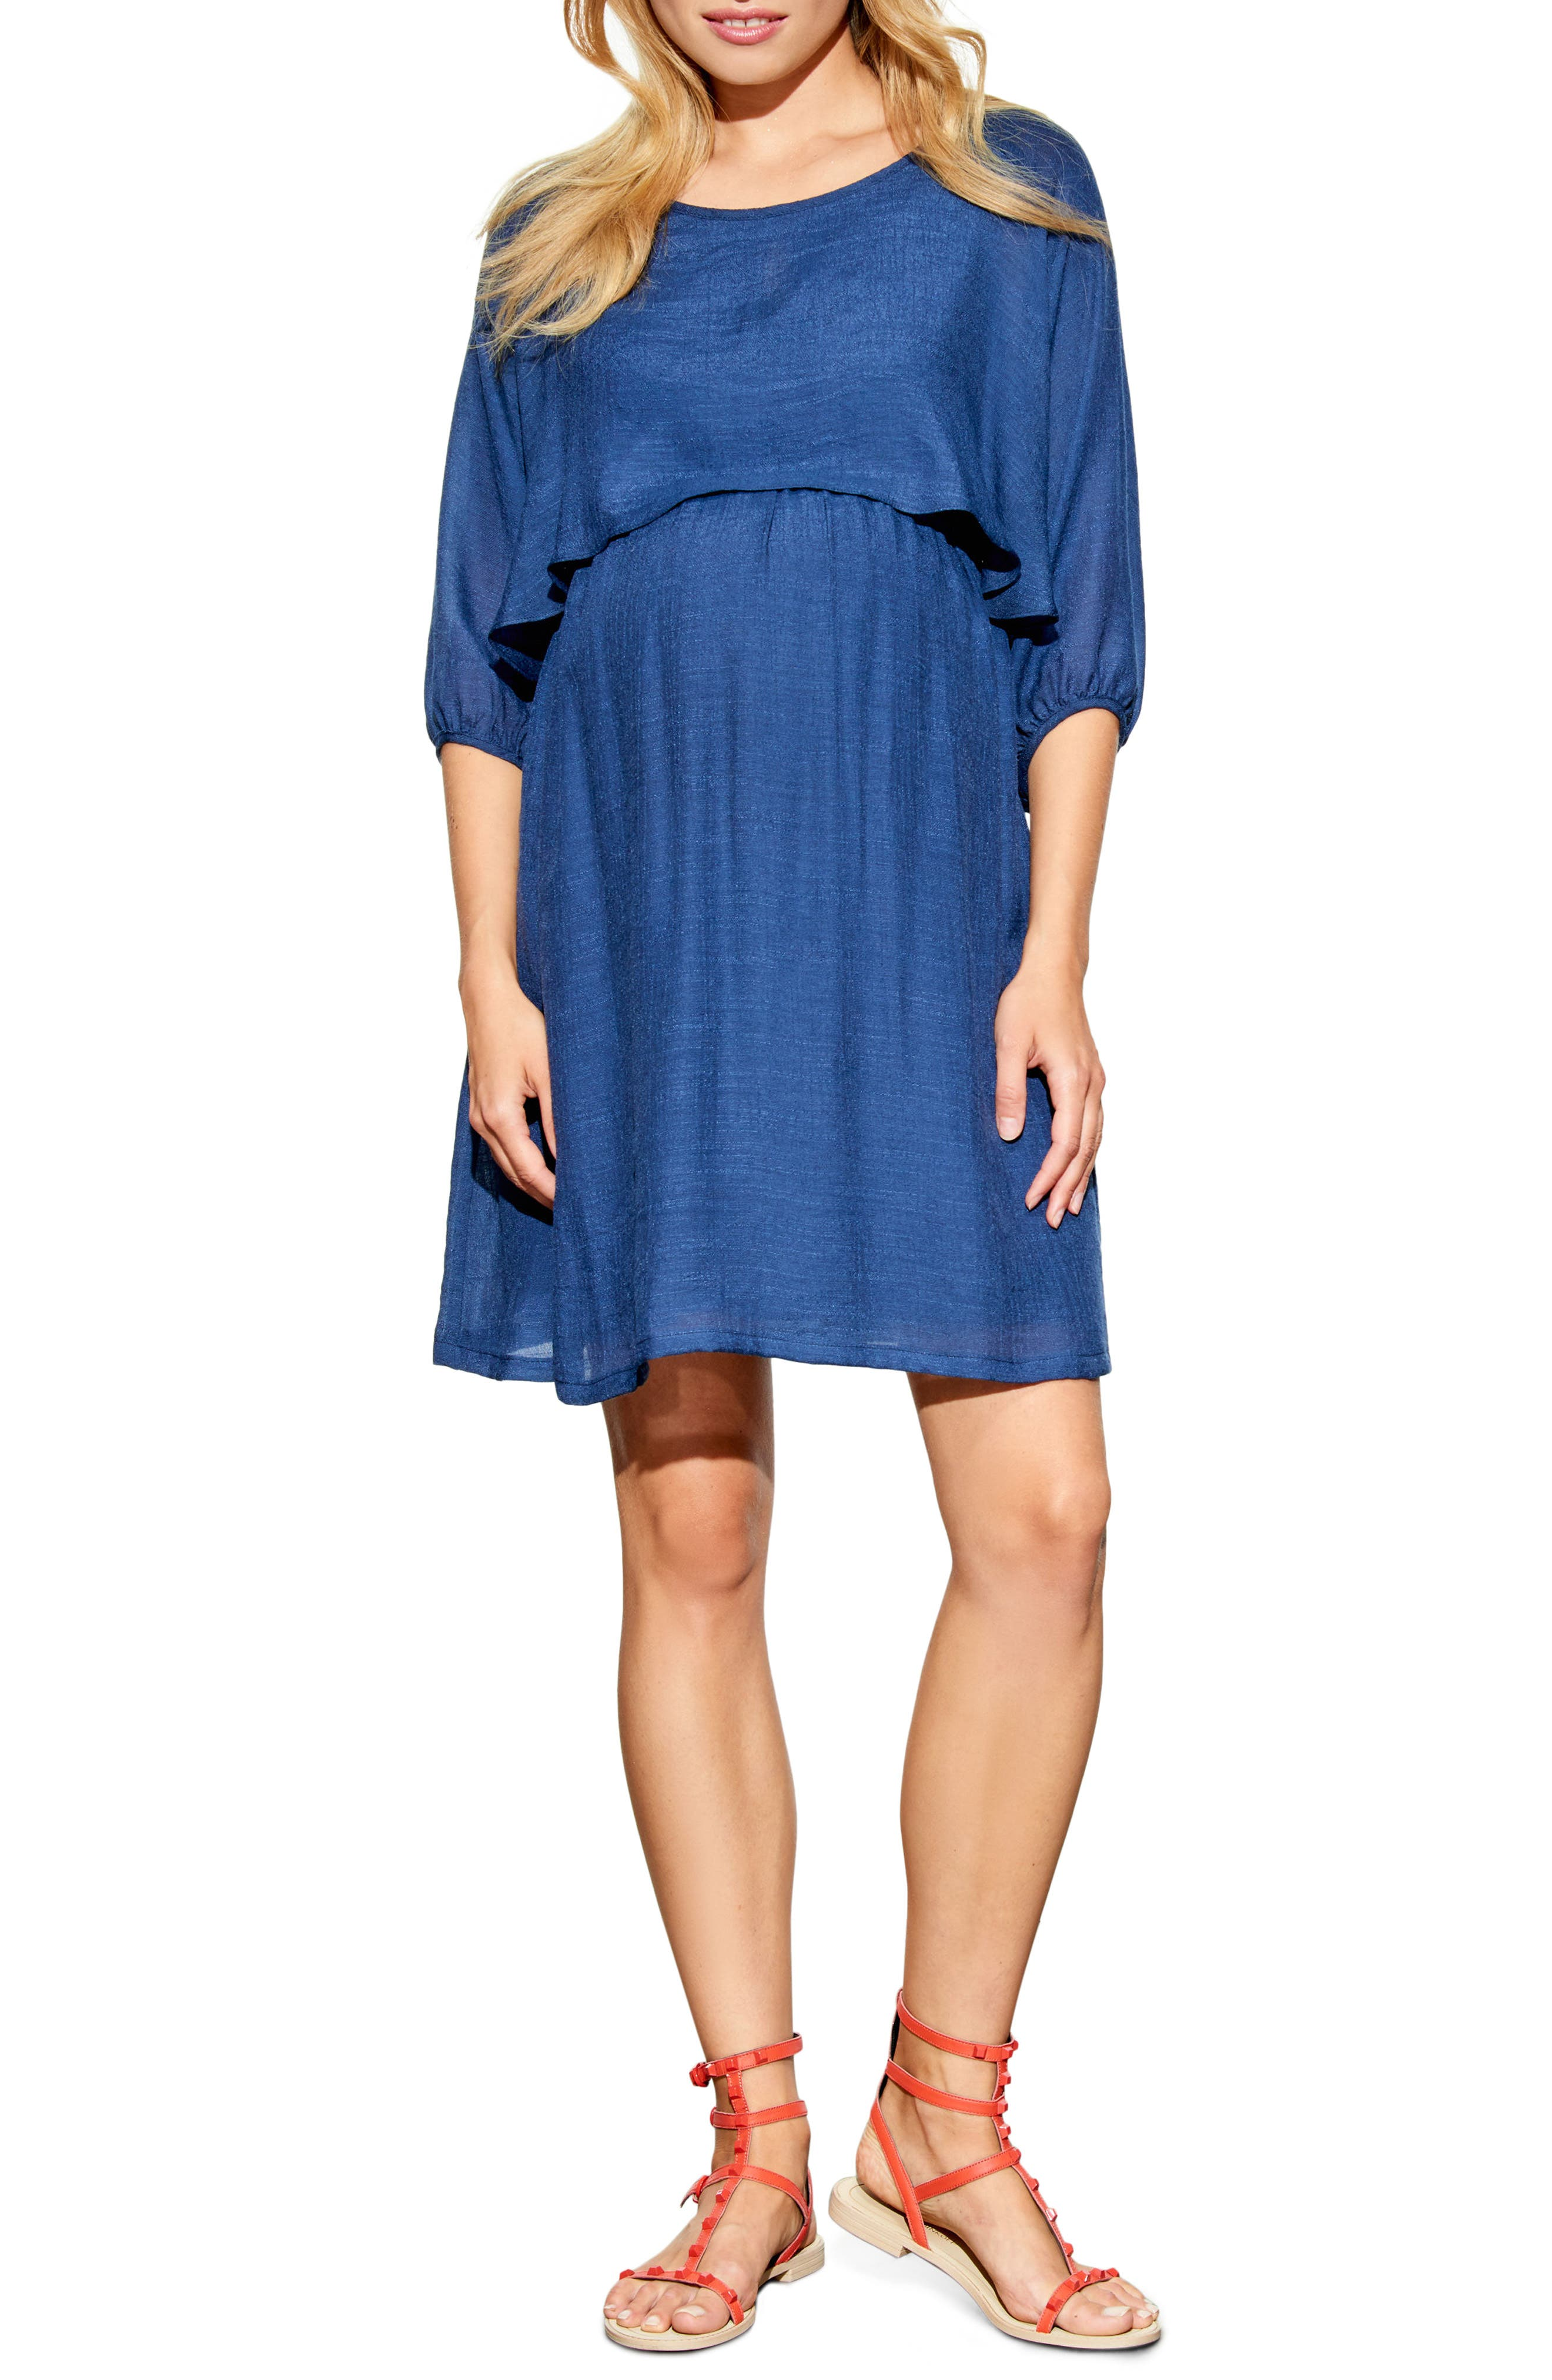 Ruffle Overlay Maternity/Nursing Dress,                             Main thumbnail 1, color,                             Navy